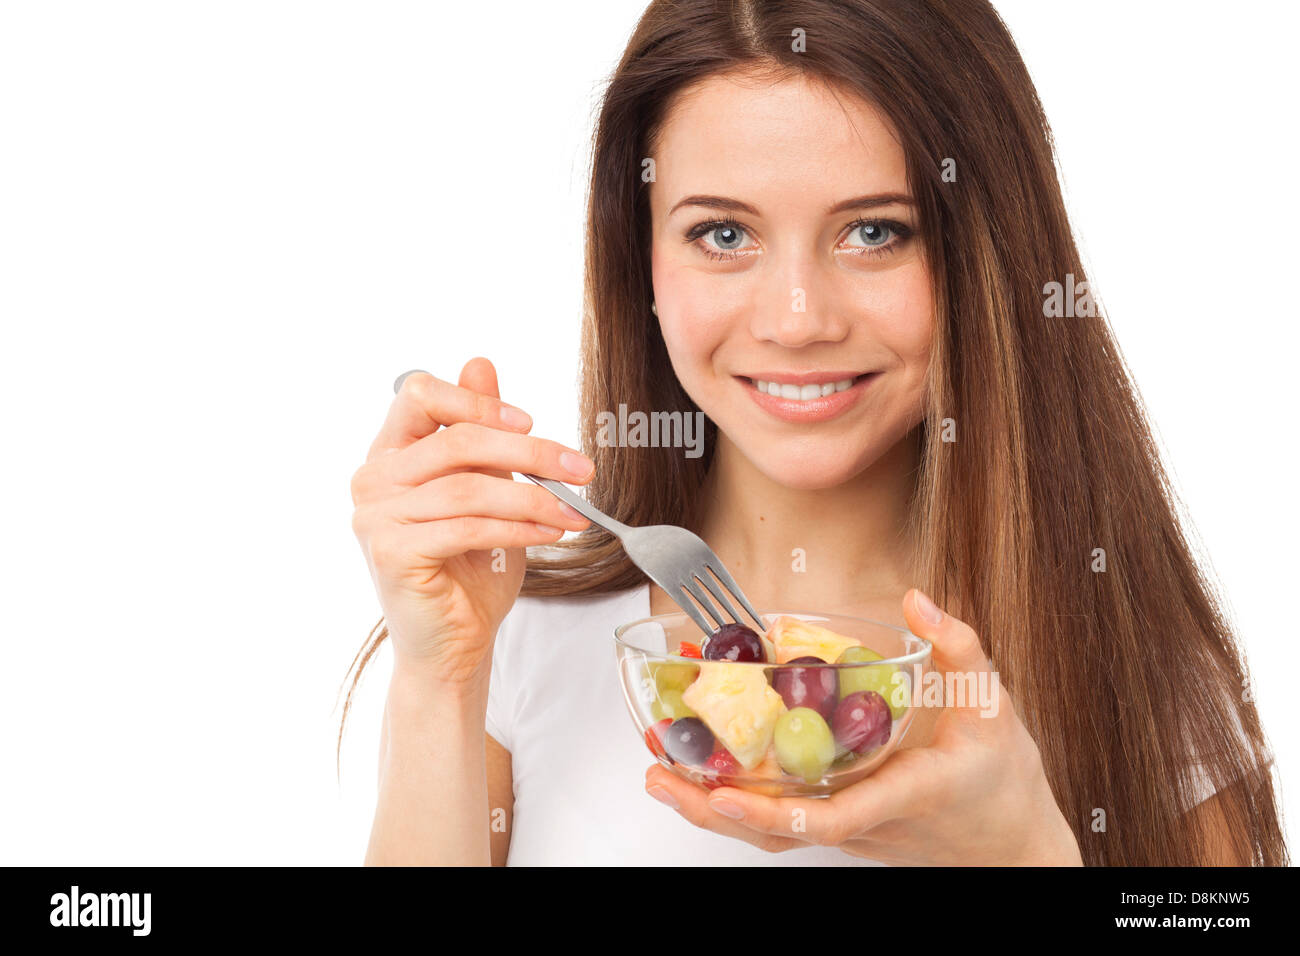 Close up portrait of a nice woman eating fruits, isolated on white Photo Stock